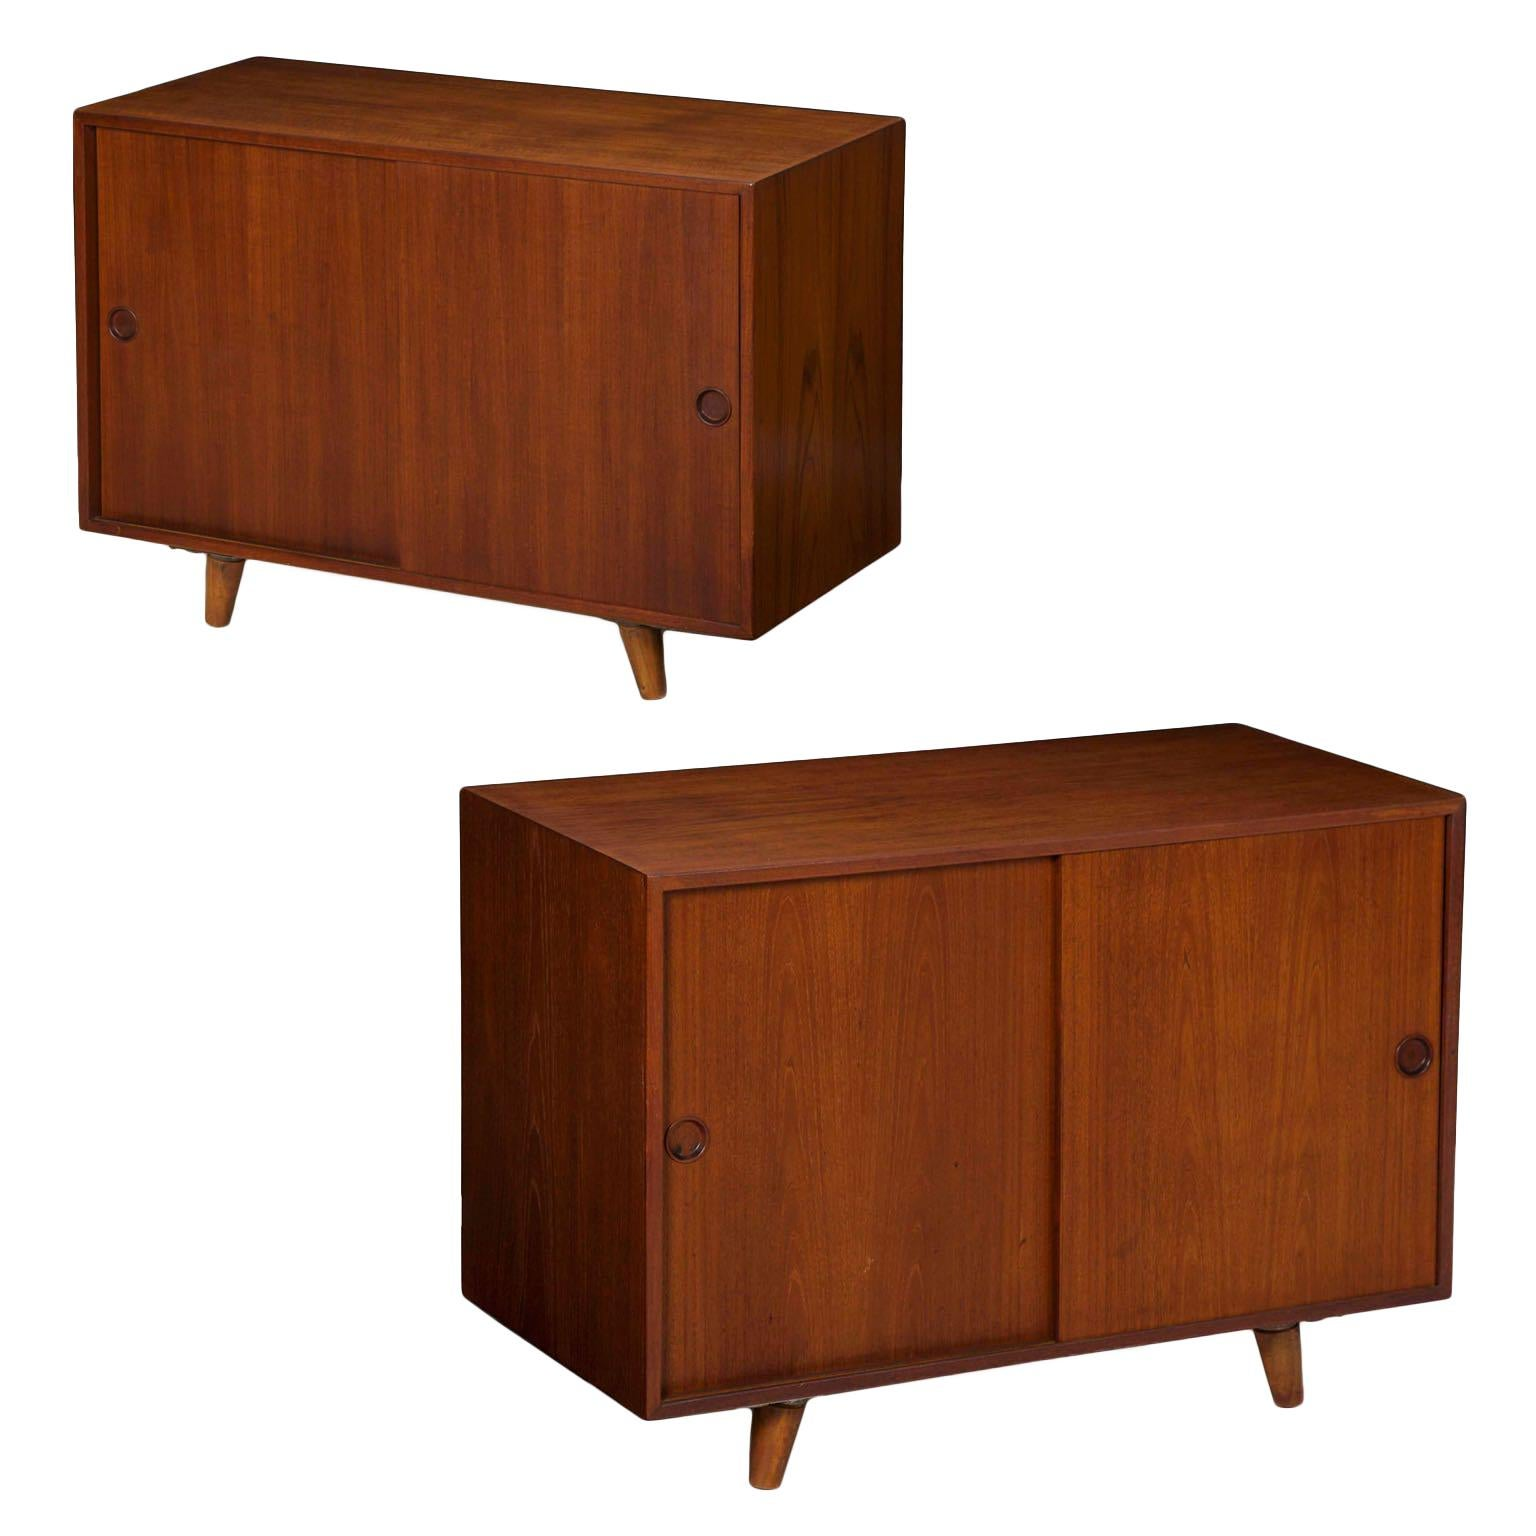 Charmant Pair Of Danish Mid Century Modern Teak Cabinets Nightstands By Peter Hvidt  For Sale